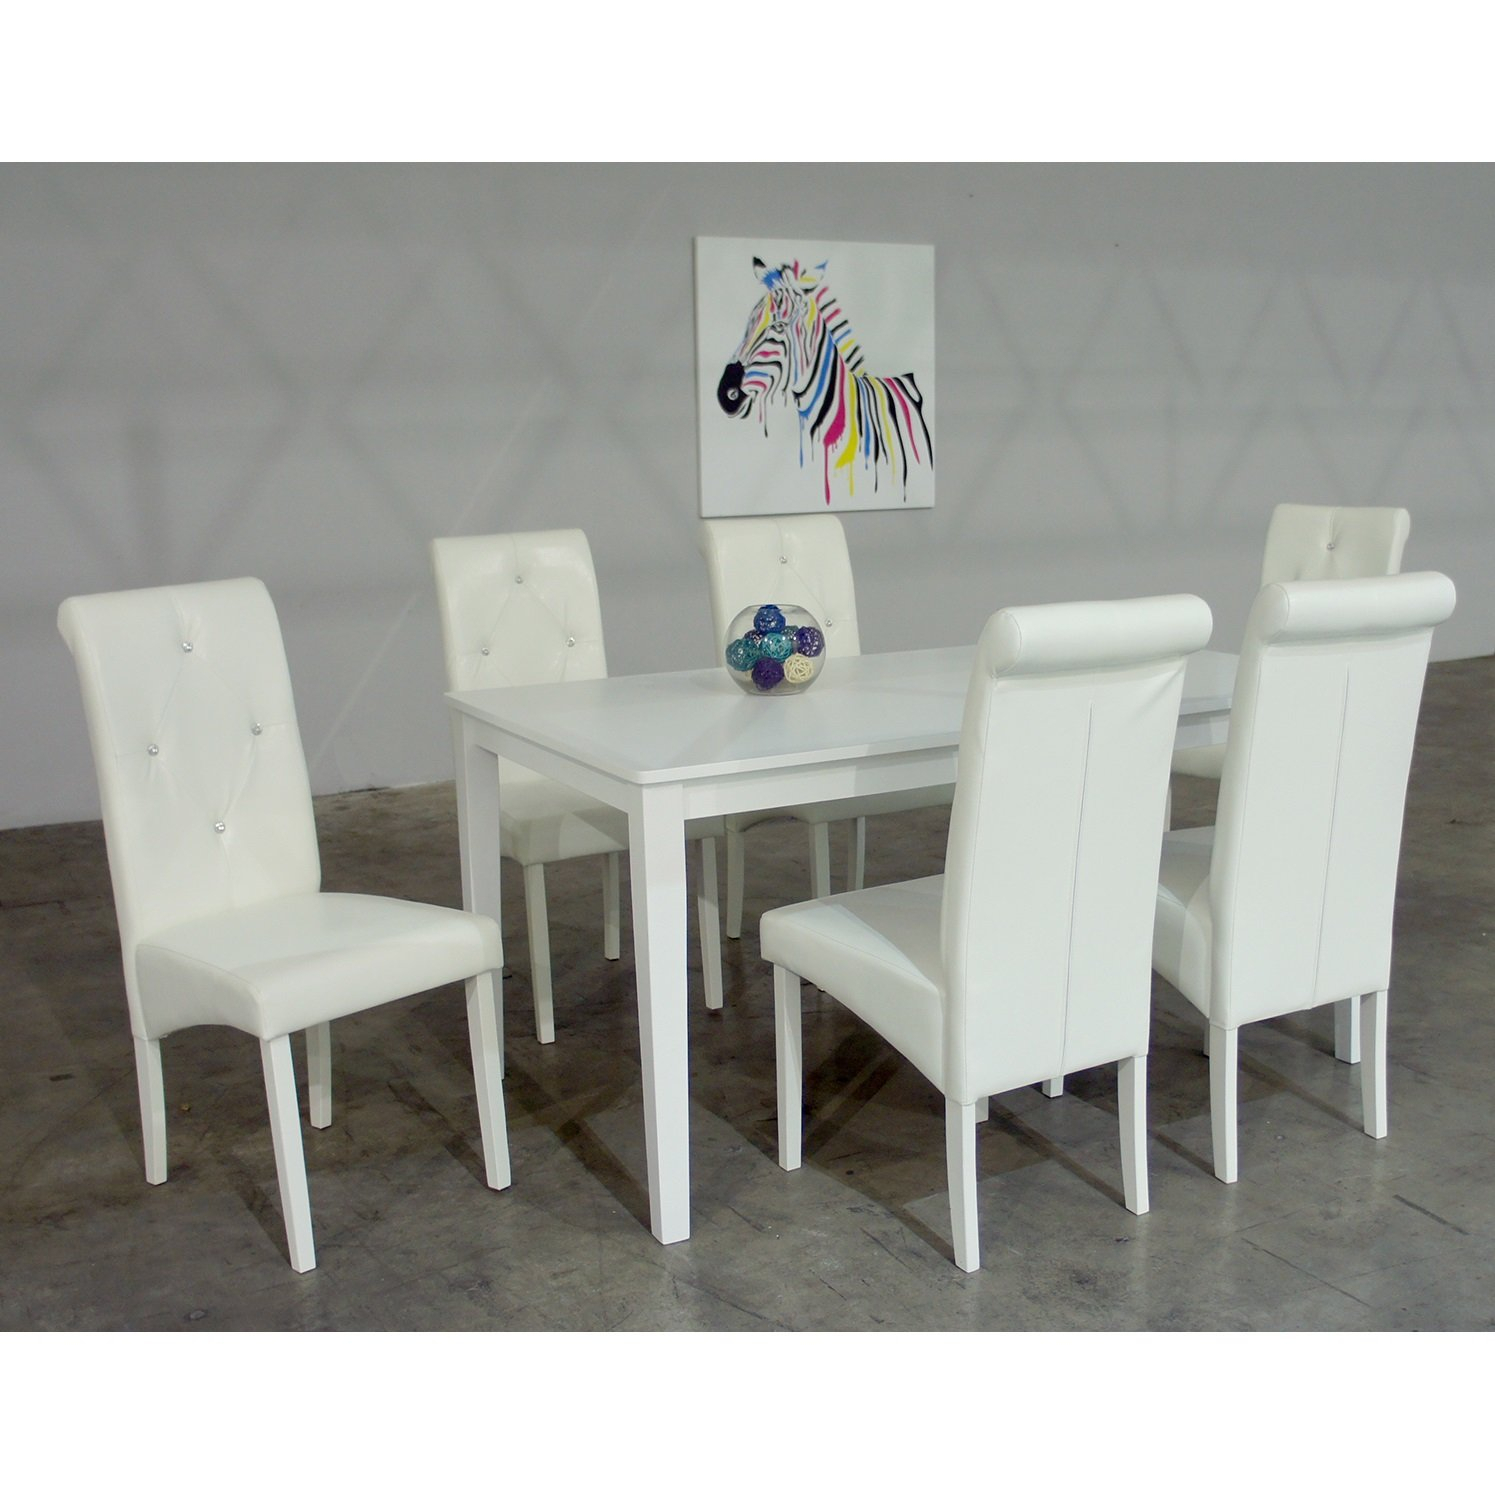 Dita 7 Piece Solid Wood Dining Set With Most Up To Date Valladares 3 Piece Pub Table Sets (View 14 of 20)